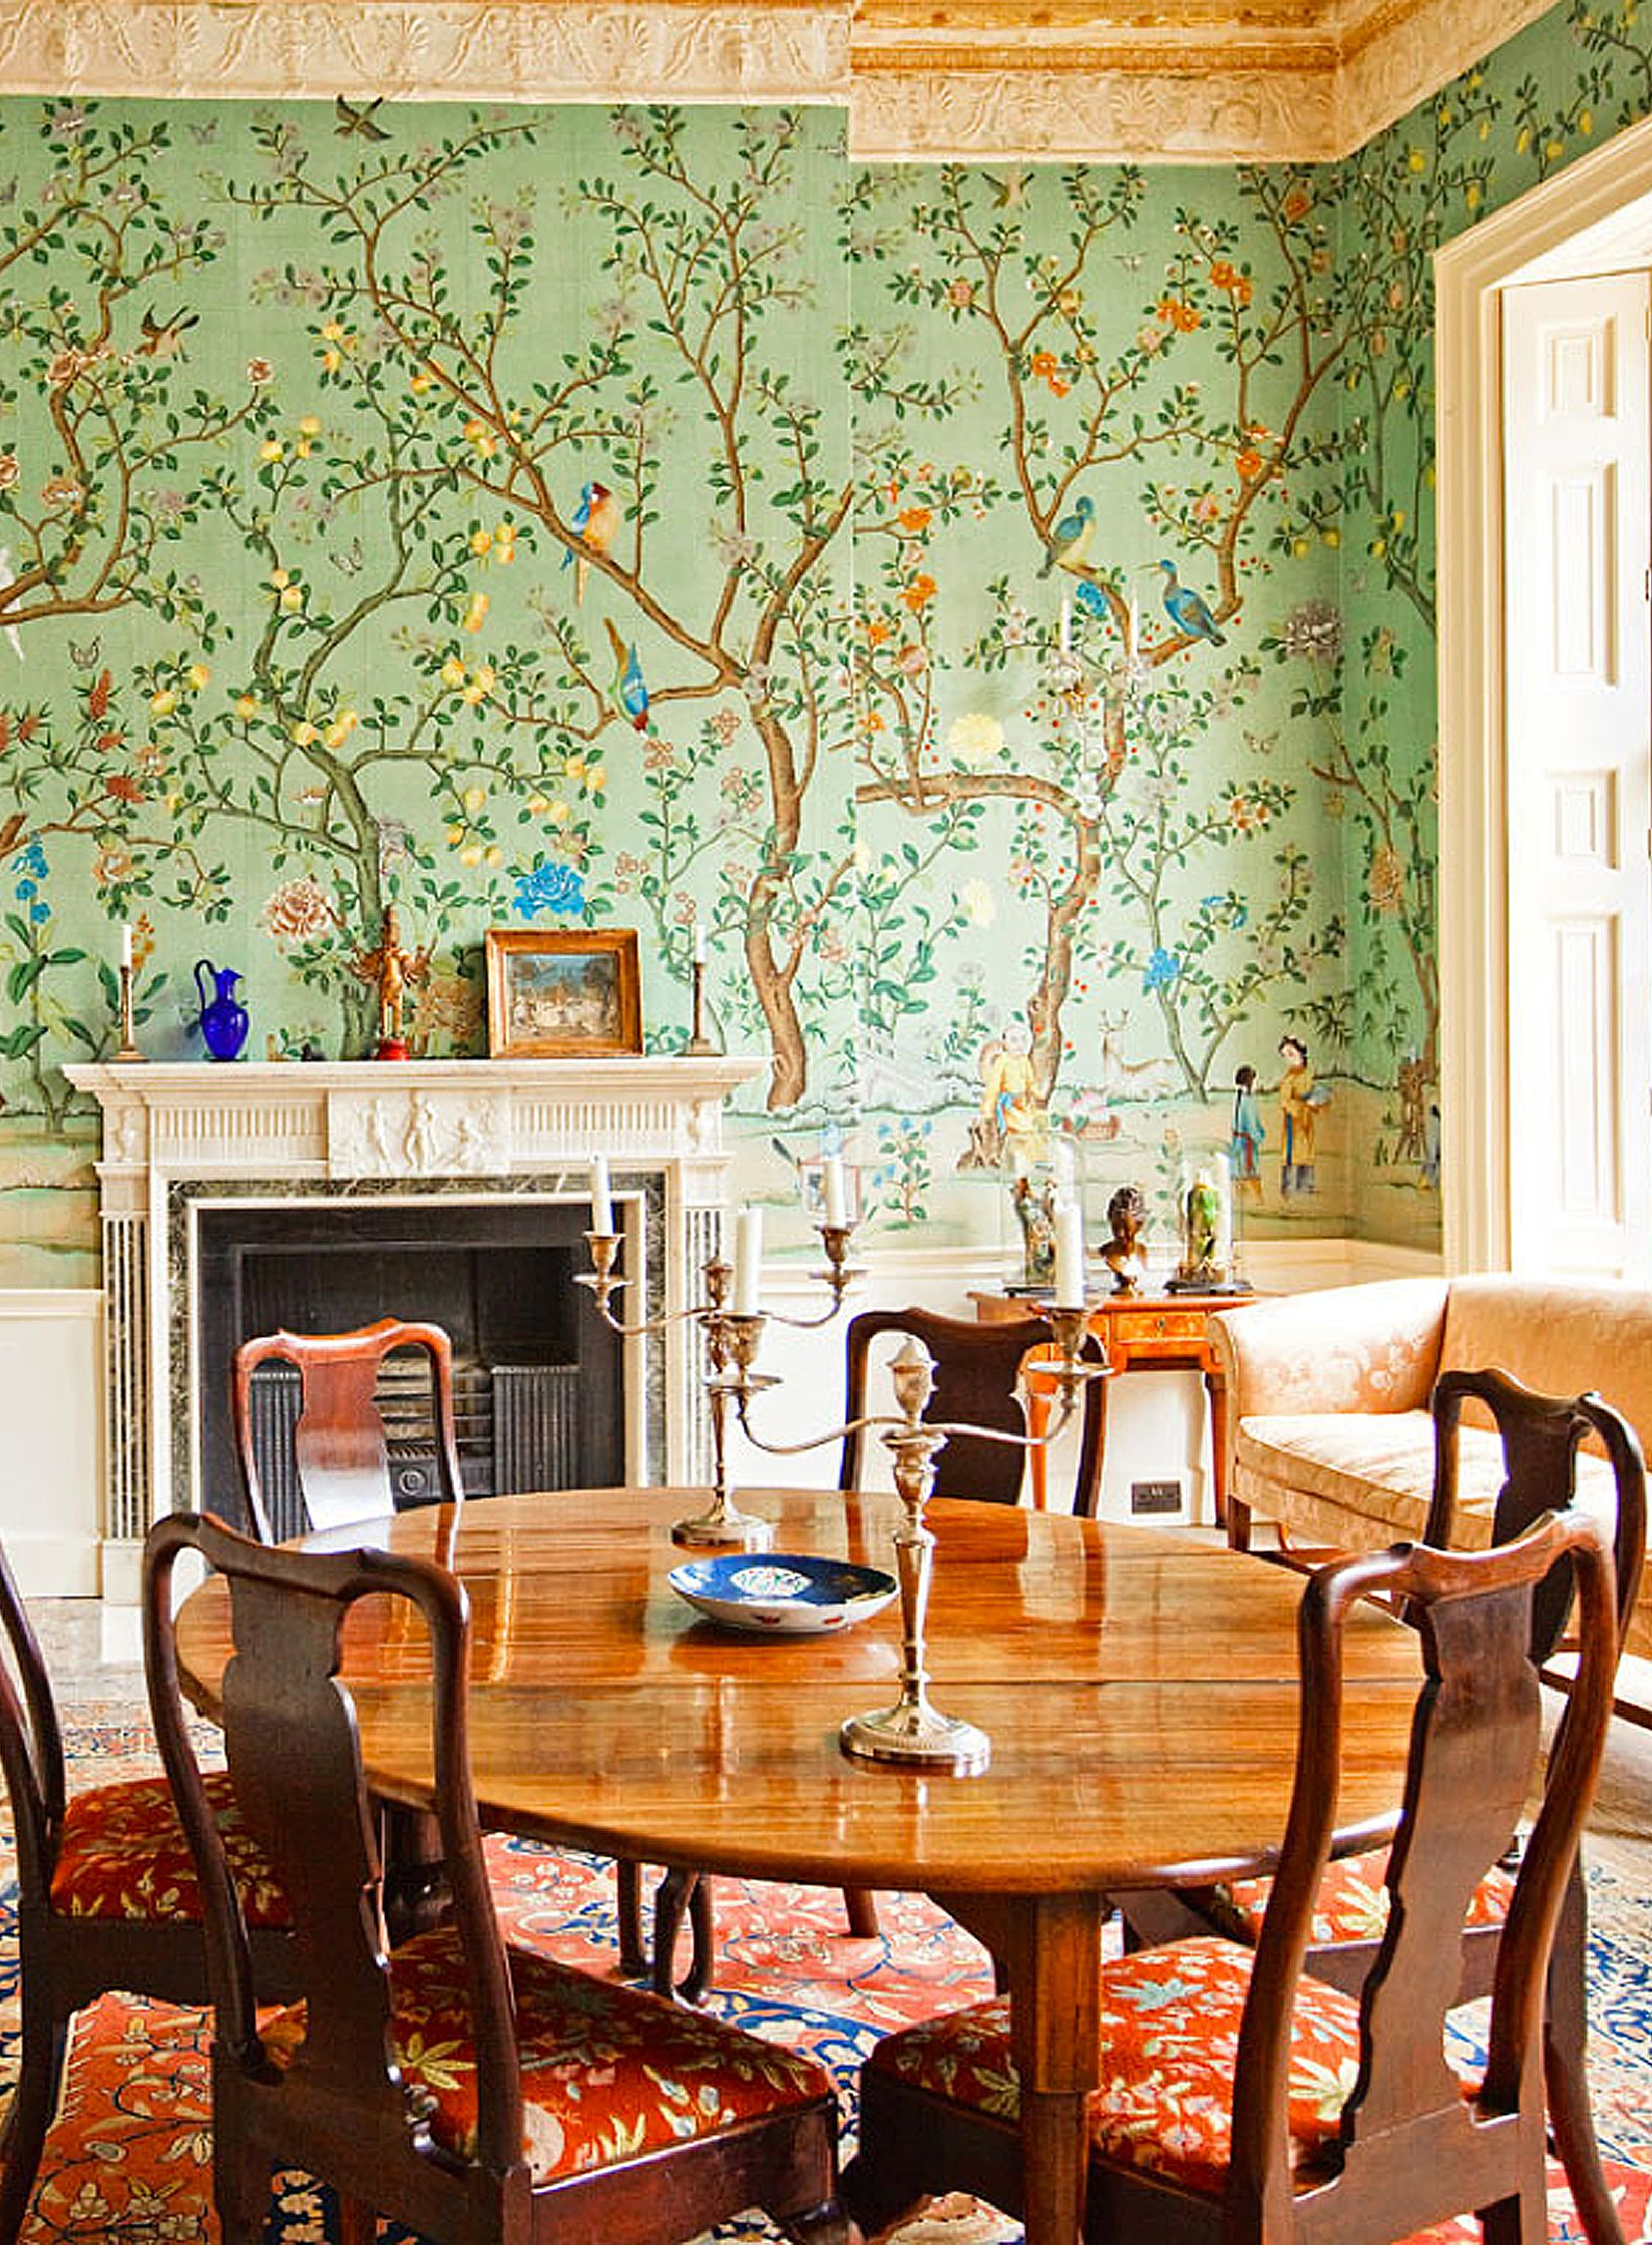 Chinoiserie wallpaper 'Abbotsford' design in standard